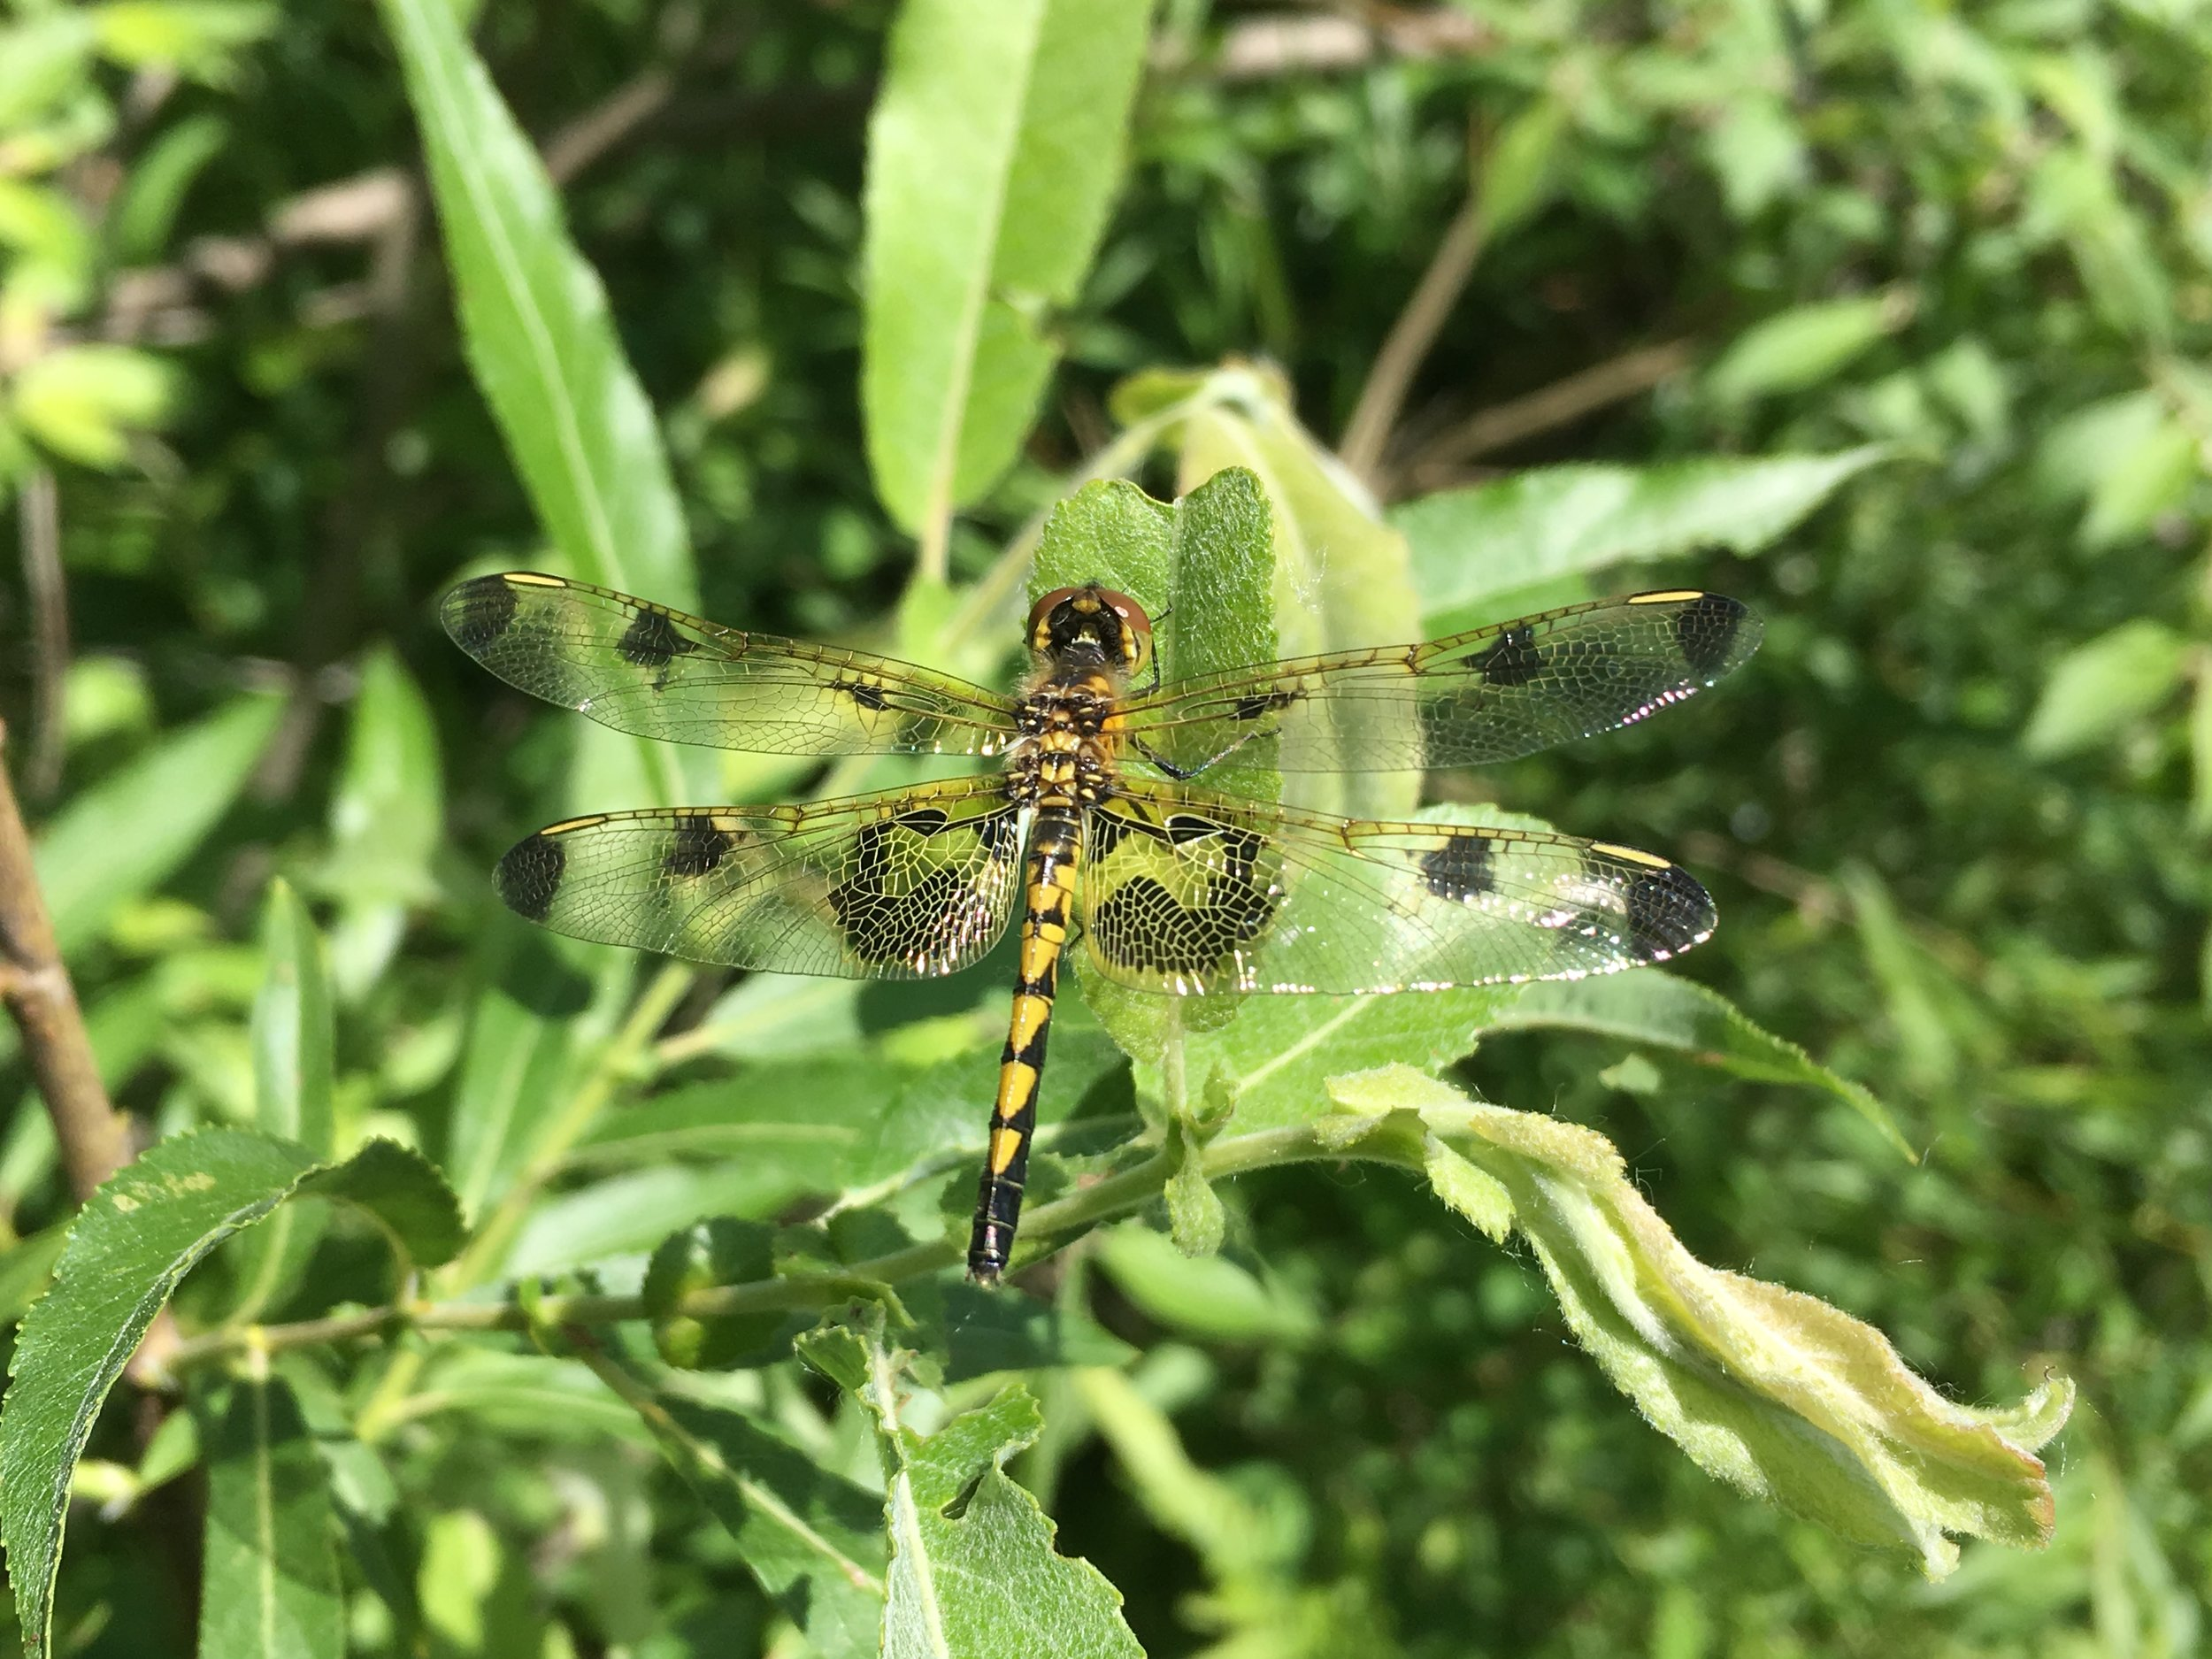 Calico Pennant - Spray Lake Watersports Park - Jun 8/18